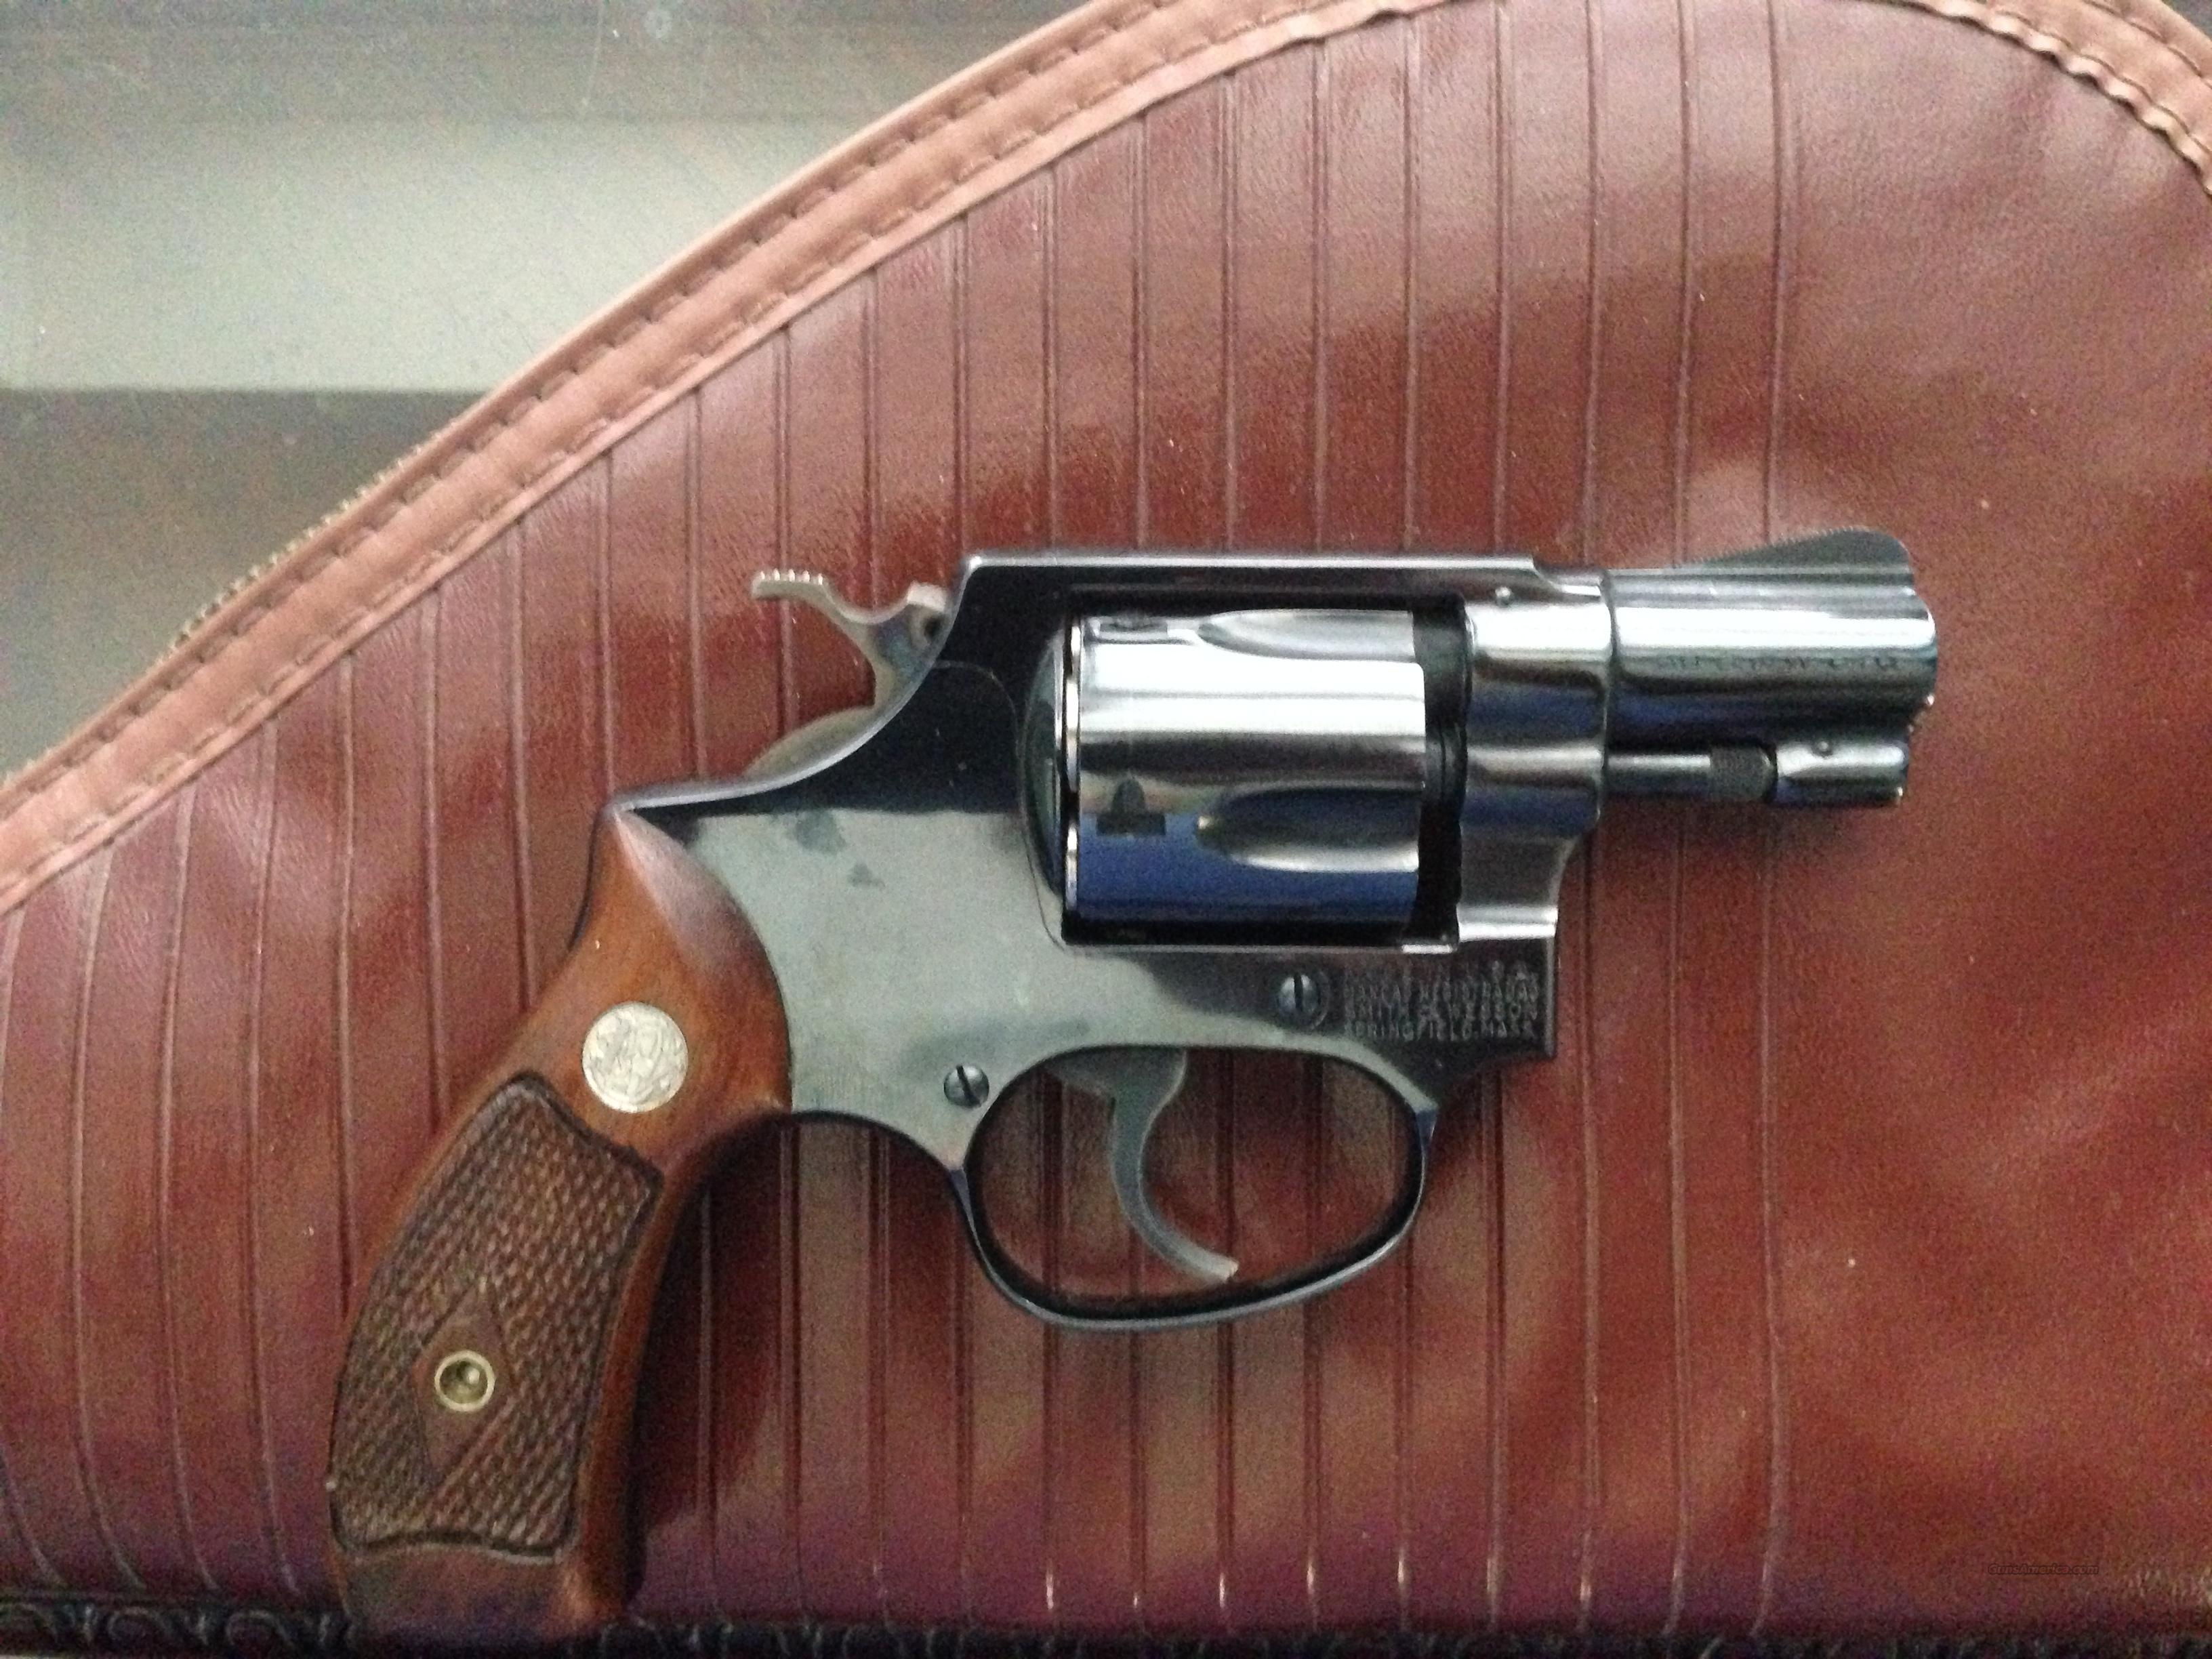 "SMITH & WESSON MODEL 36 .38 SPCL 1.75"" BARREL  Guns > Pistols > Smith & Wesson Revolvers > Full Frame Revolver"